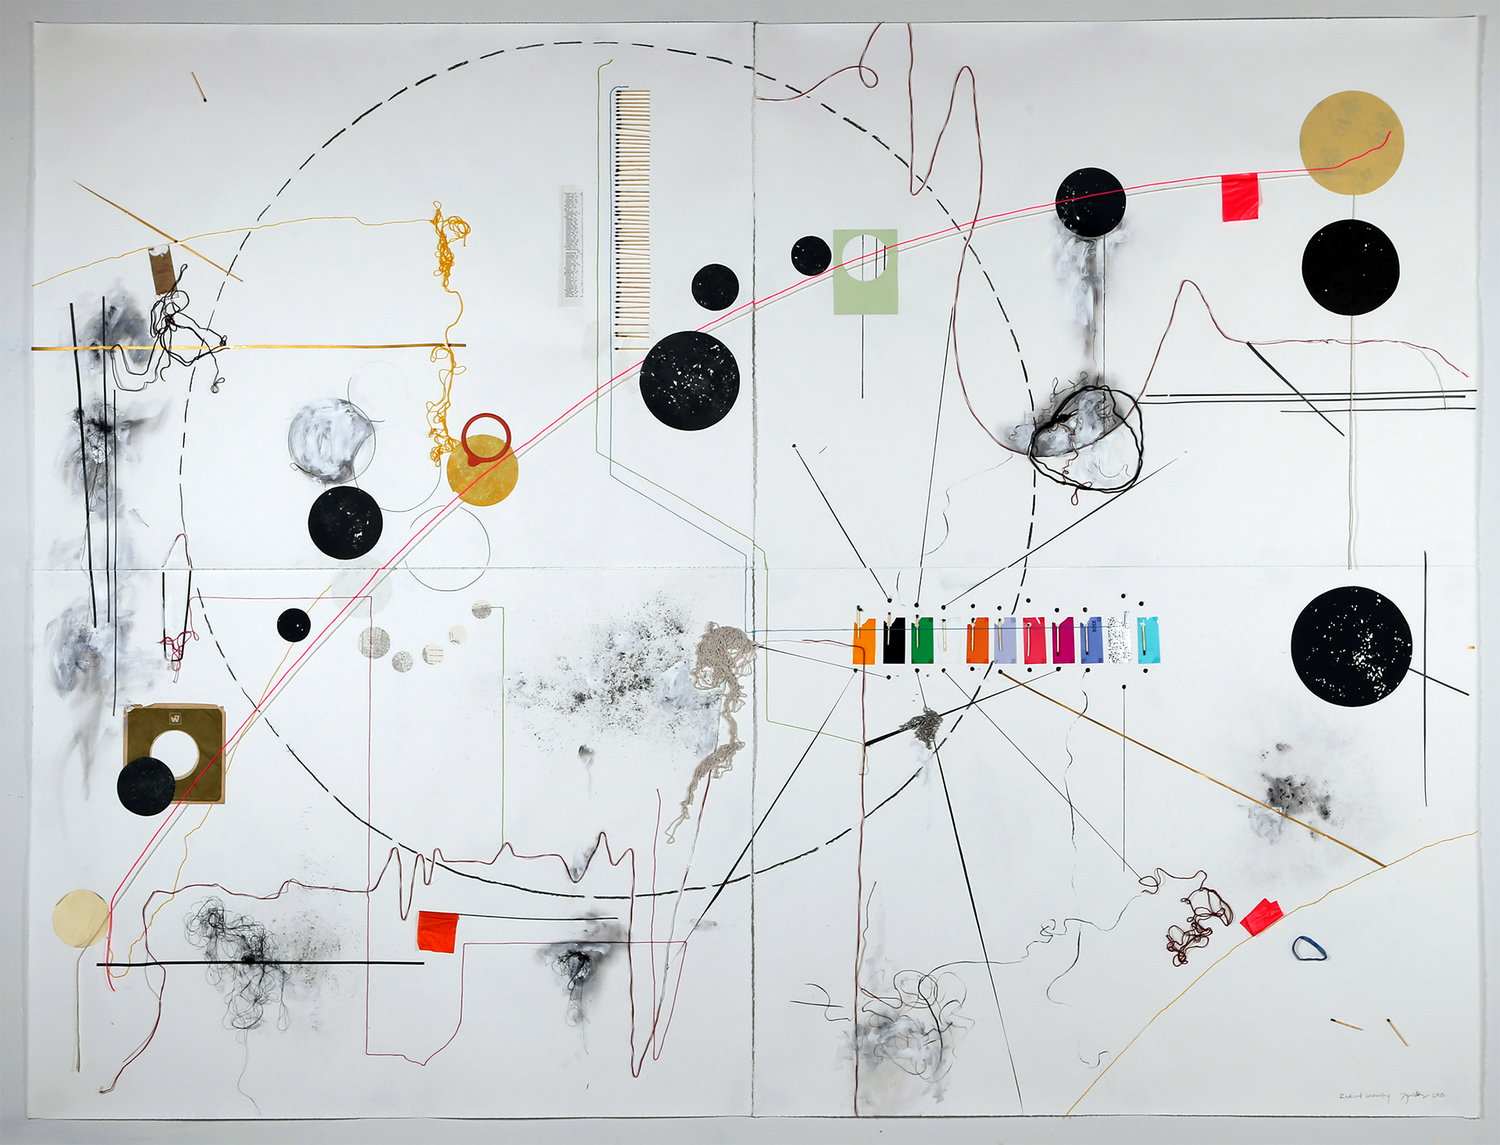 Radical Geometry, mixed media on paper by Julie Wills